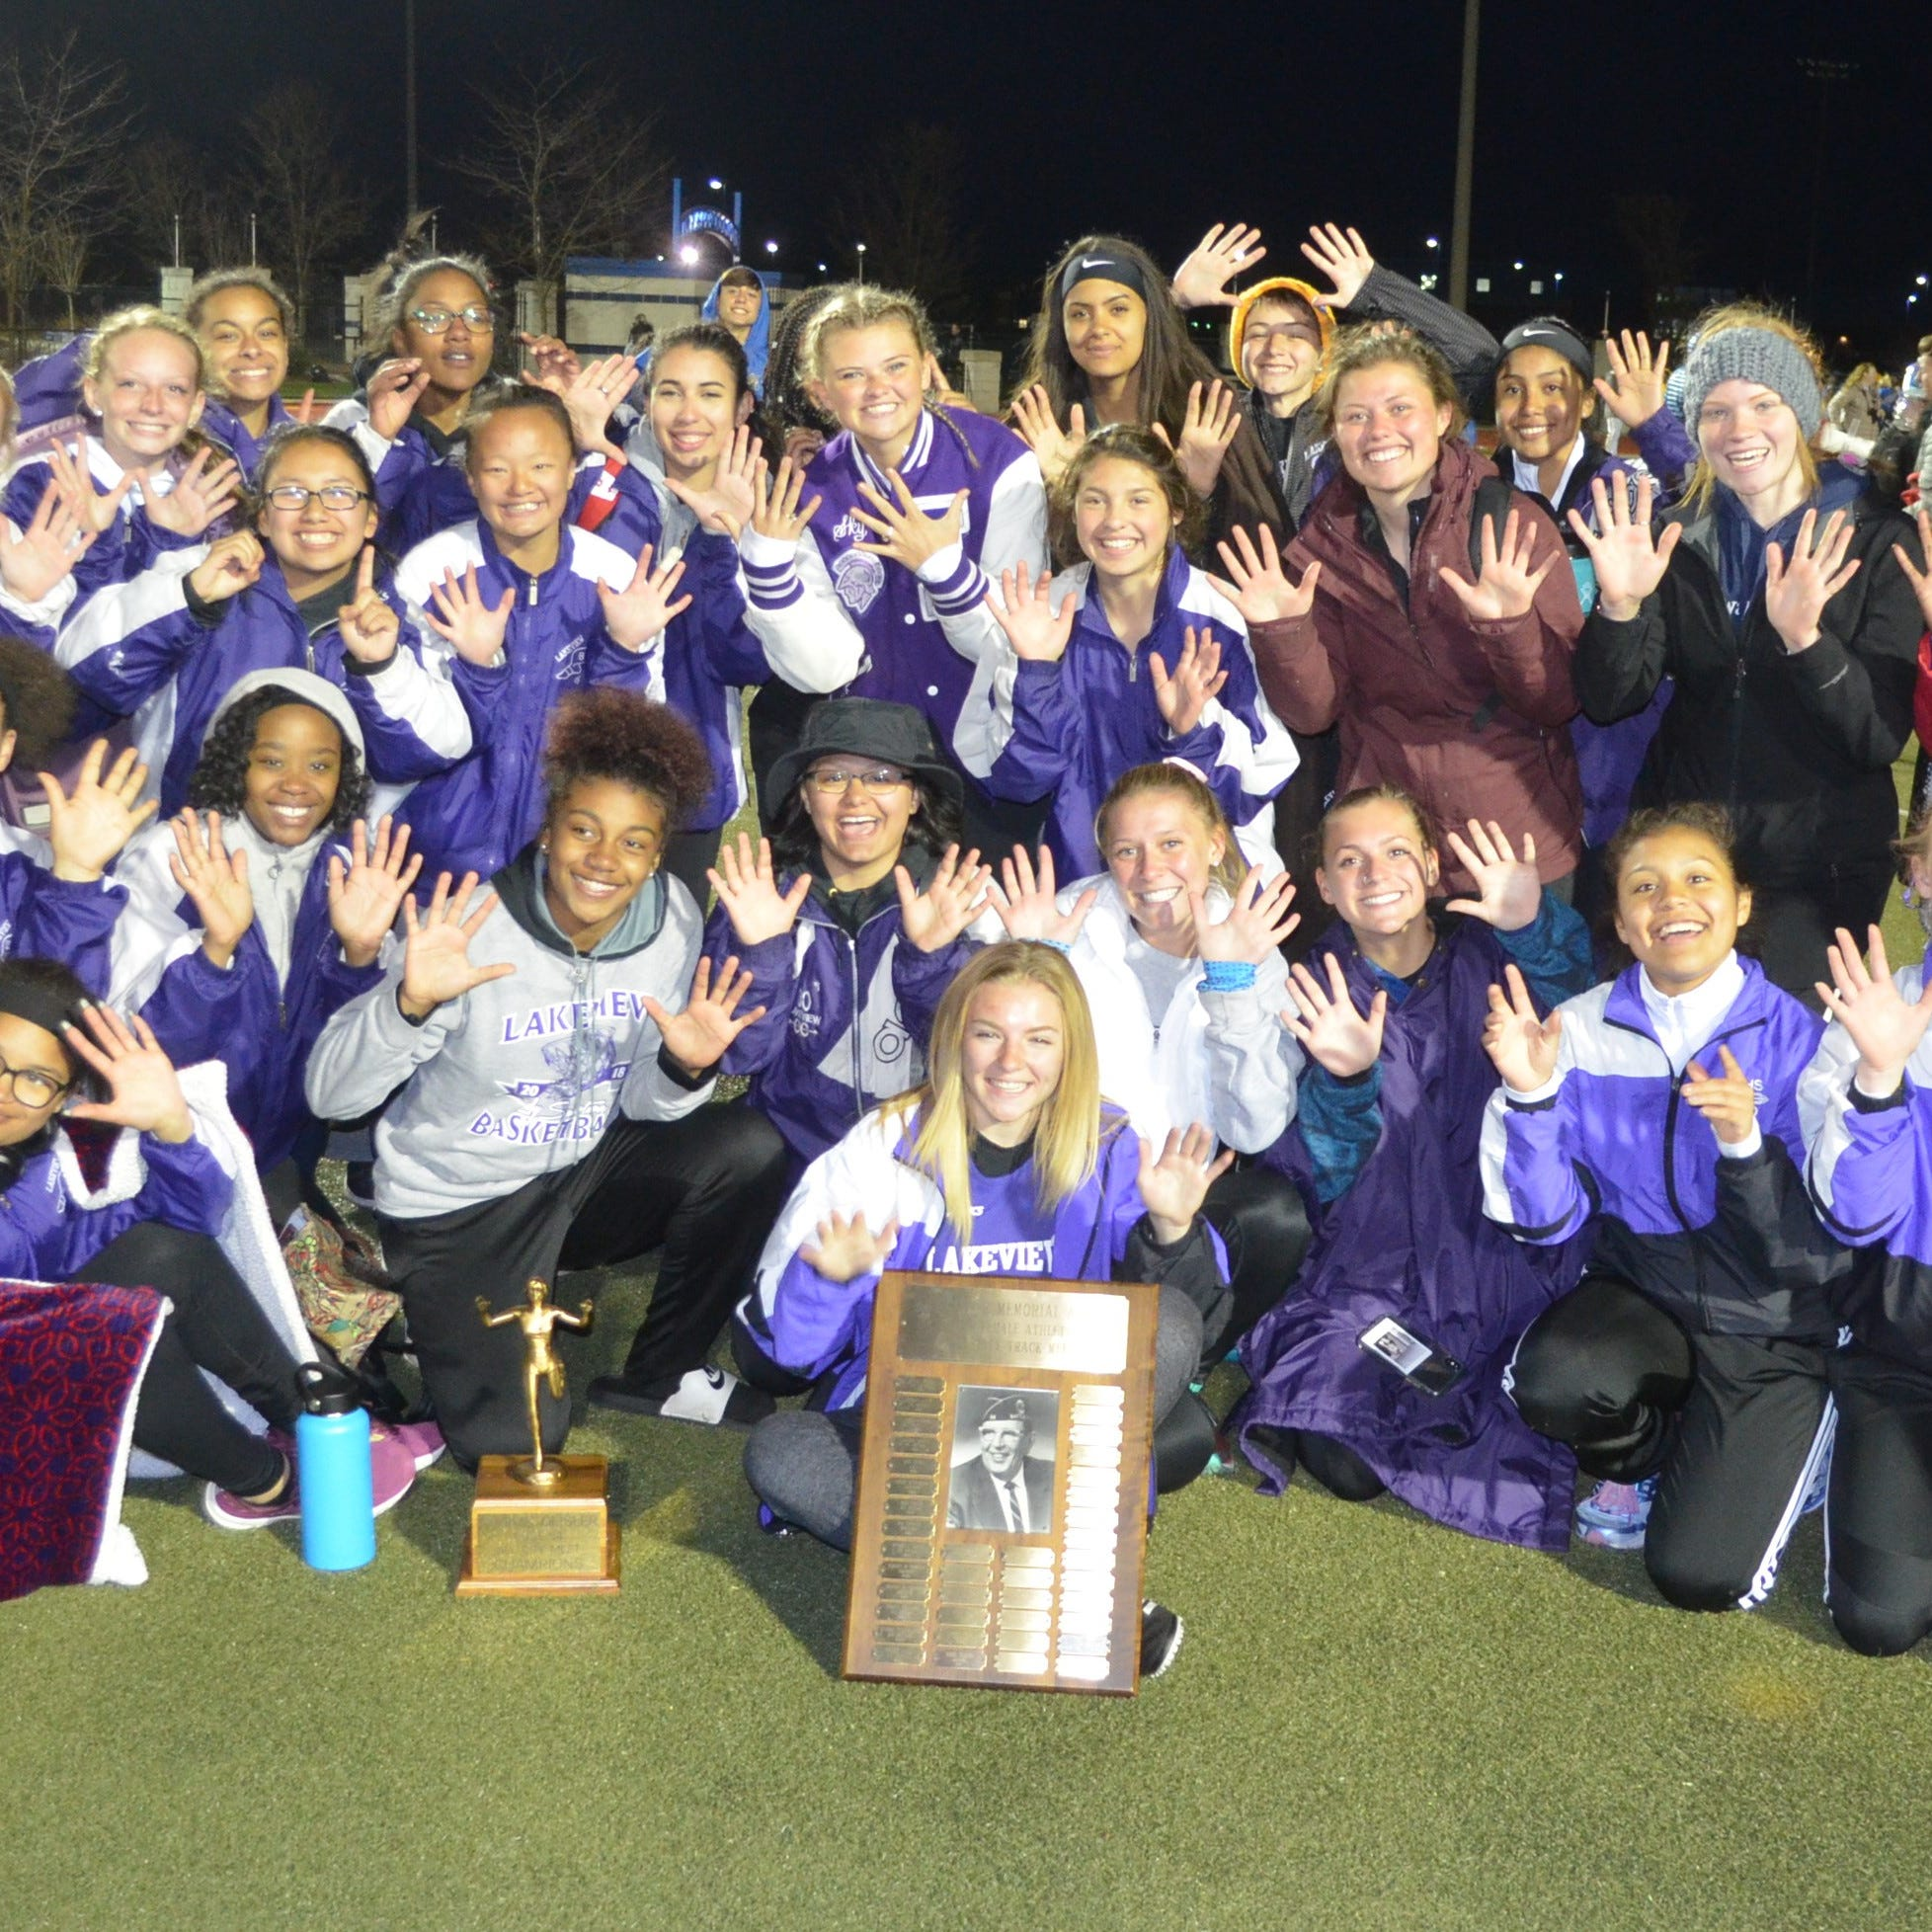 A Perfect 10! Lakeview wins 10th straight All-City track title